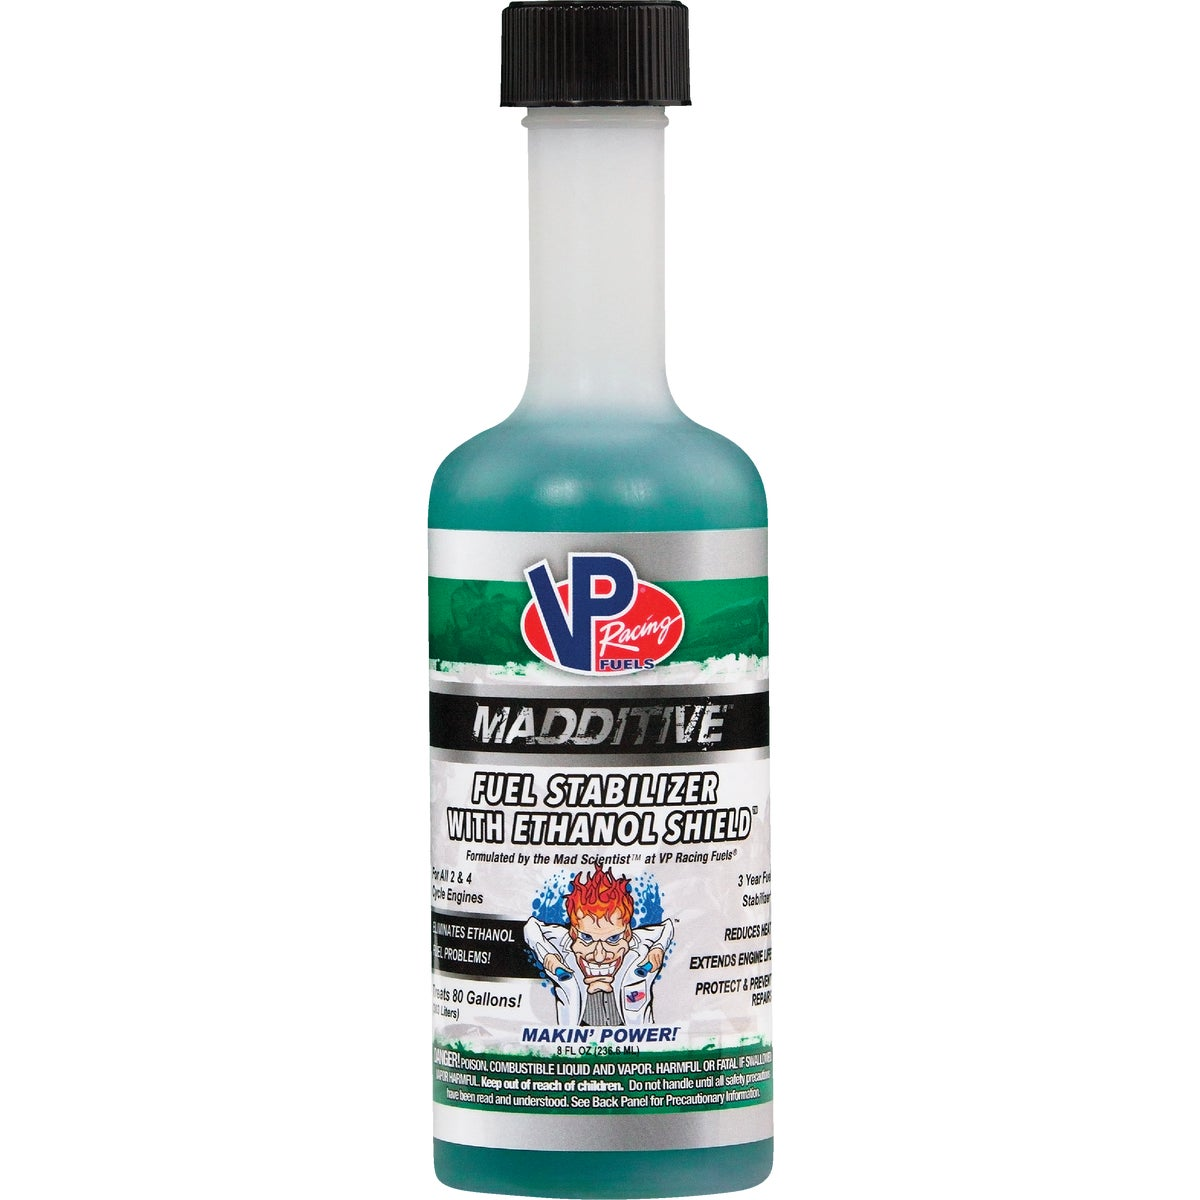 50CT AA CLEANING WIPES - 10832 by Armored Autogroup